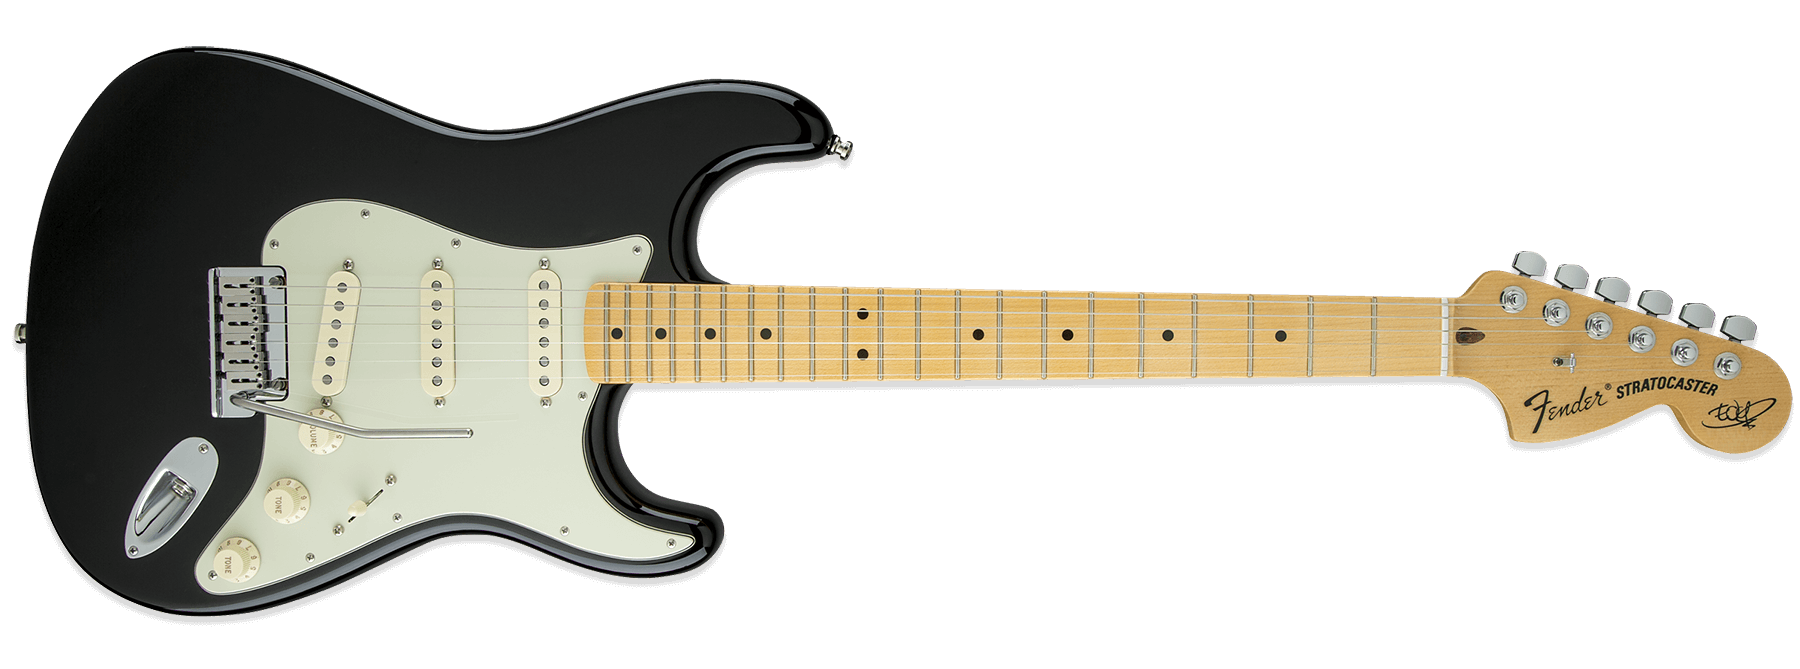 Fender The Edge Strat Black